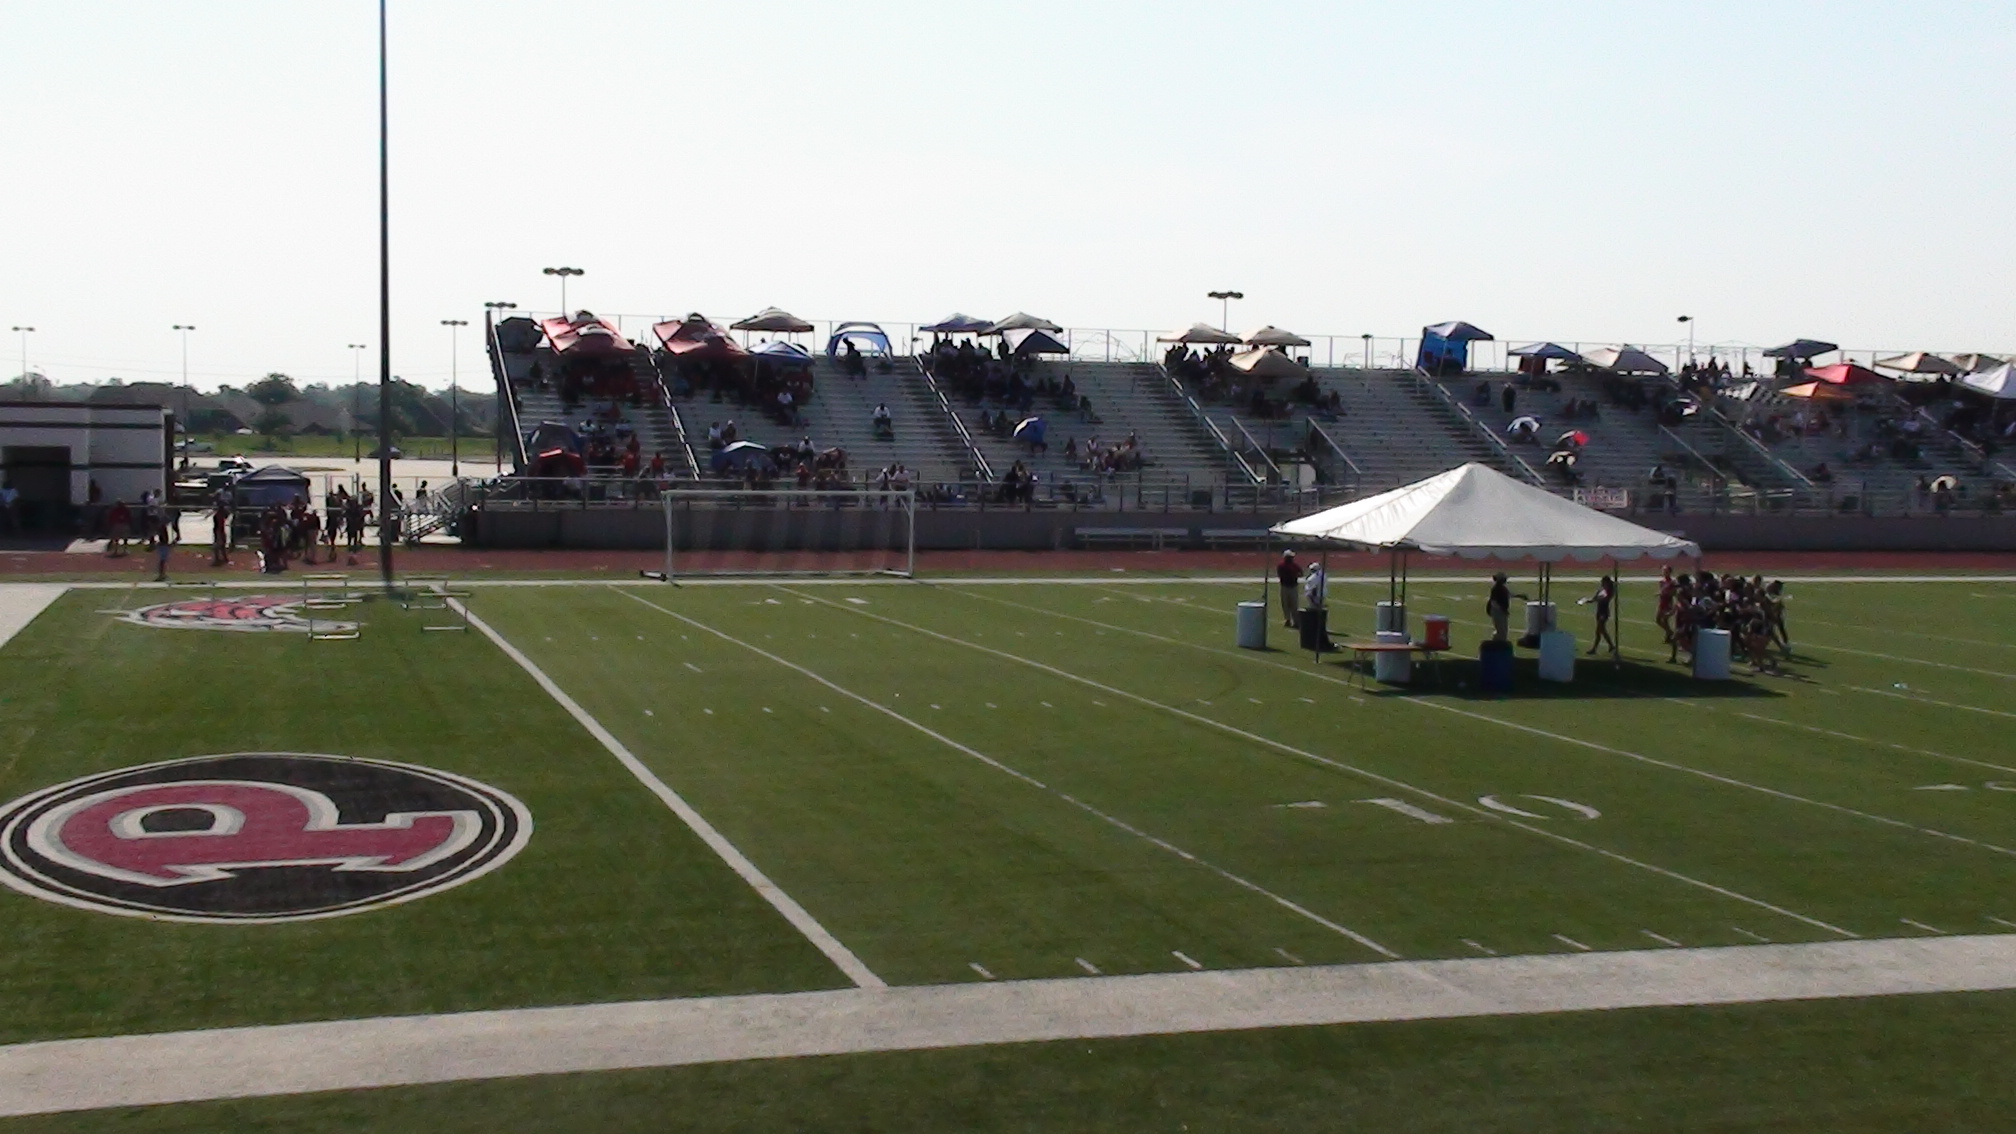 View of the east bleachers at The Rig